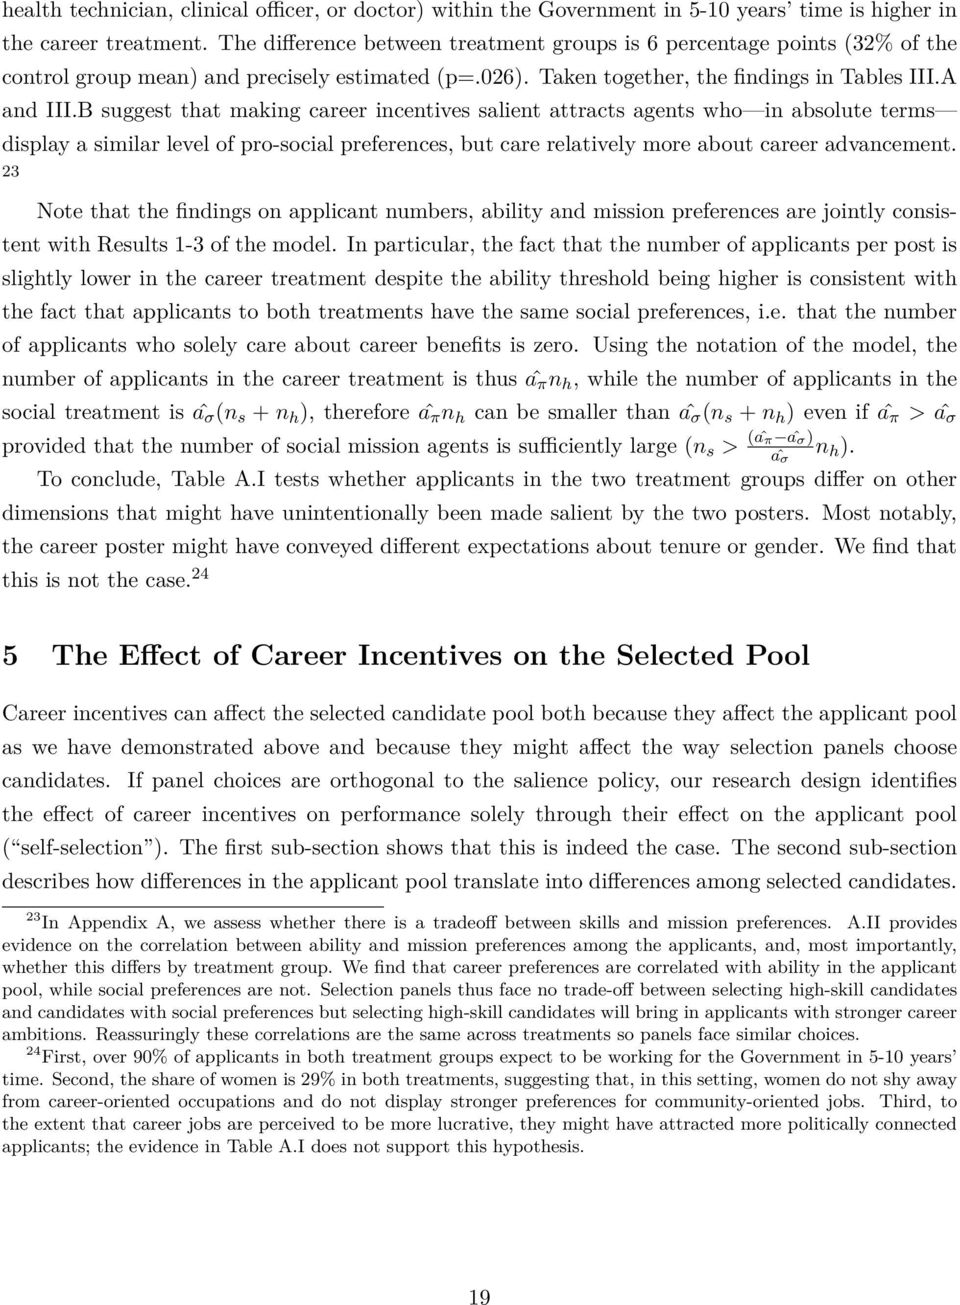 B suggest that making career incentives salient attracts agents who in absolute terms display a similar level of pro-social preferences, but care relatively more about career advancement.